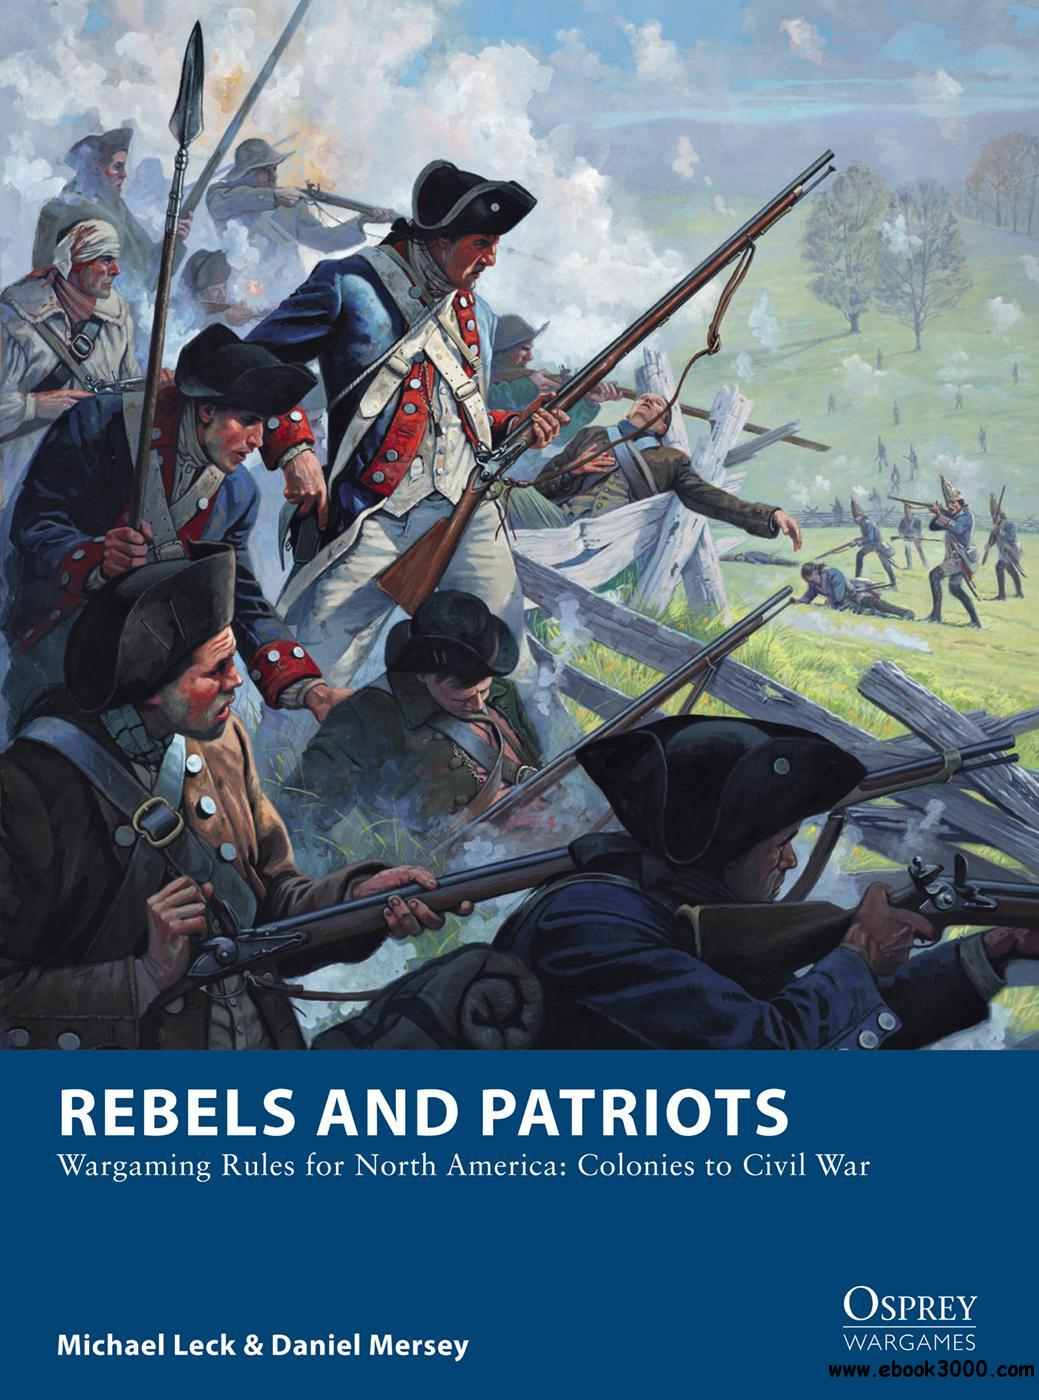 Rebels and Patriots: Wargaming Rules for North America: Colonies to Civil War (Osprey Wargames)